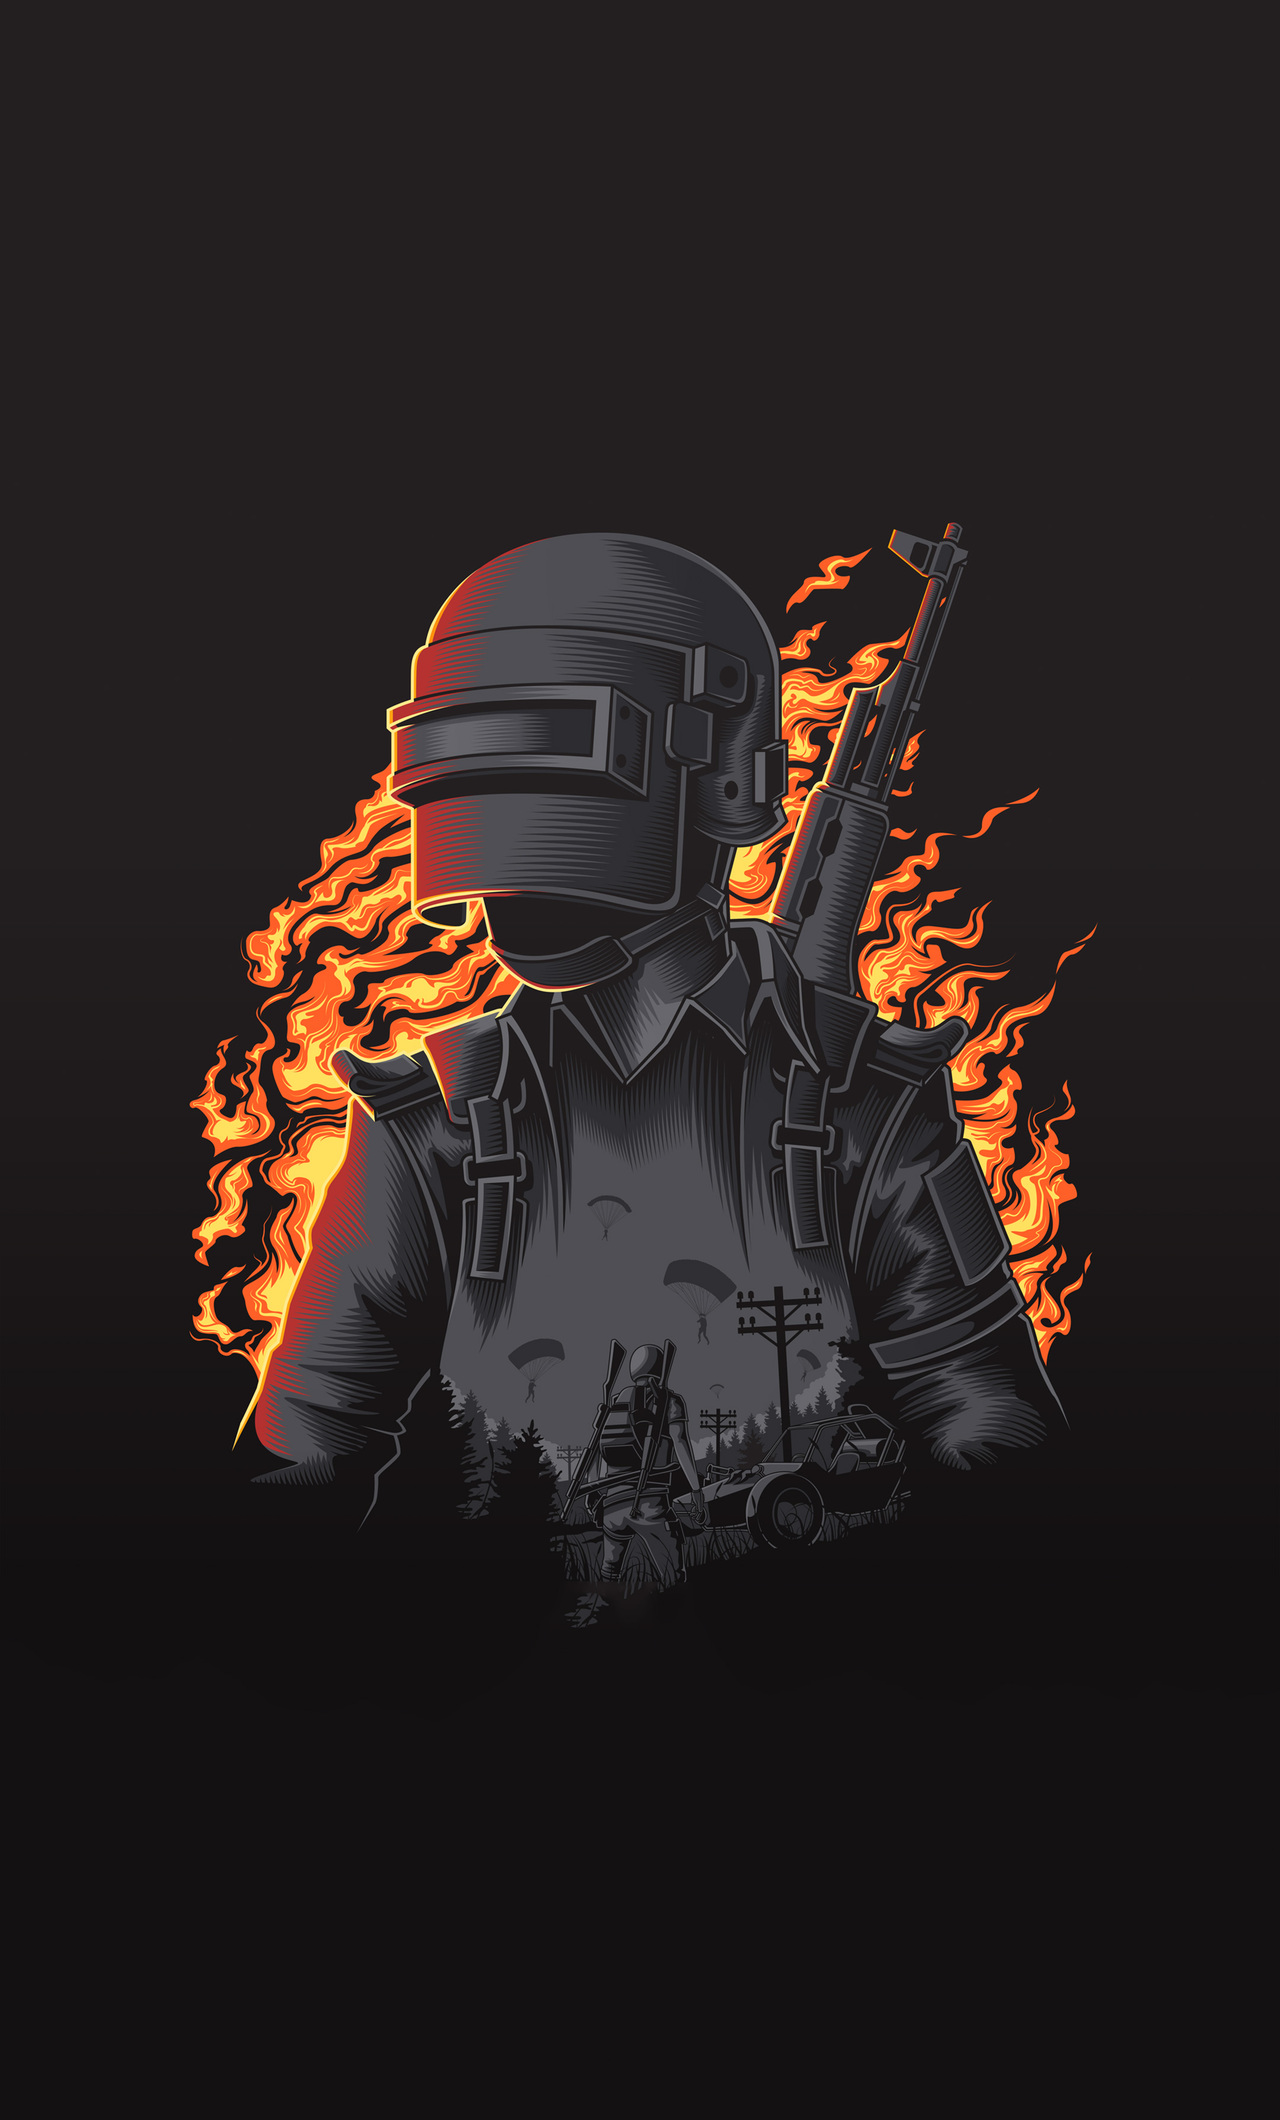 1280x2120 Pubg Illustration 4k Iphone 6 Hd 4k Wallpapers